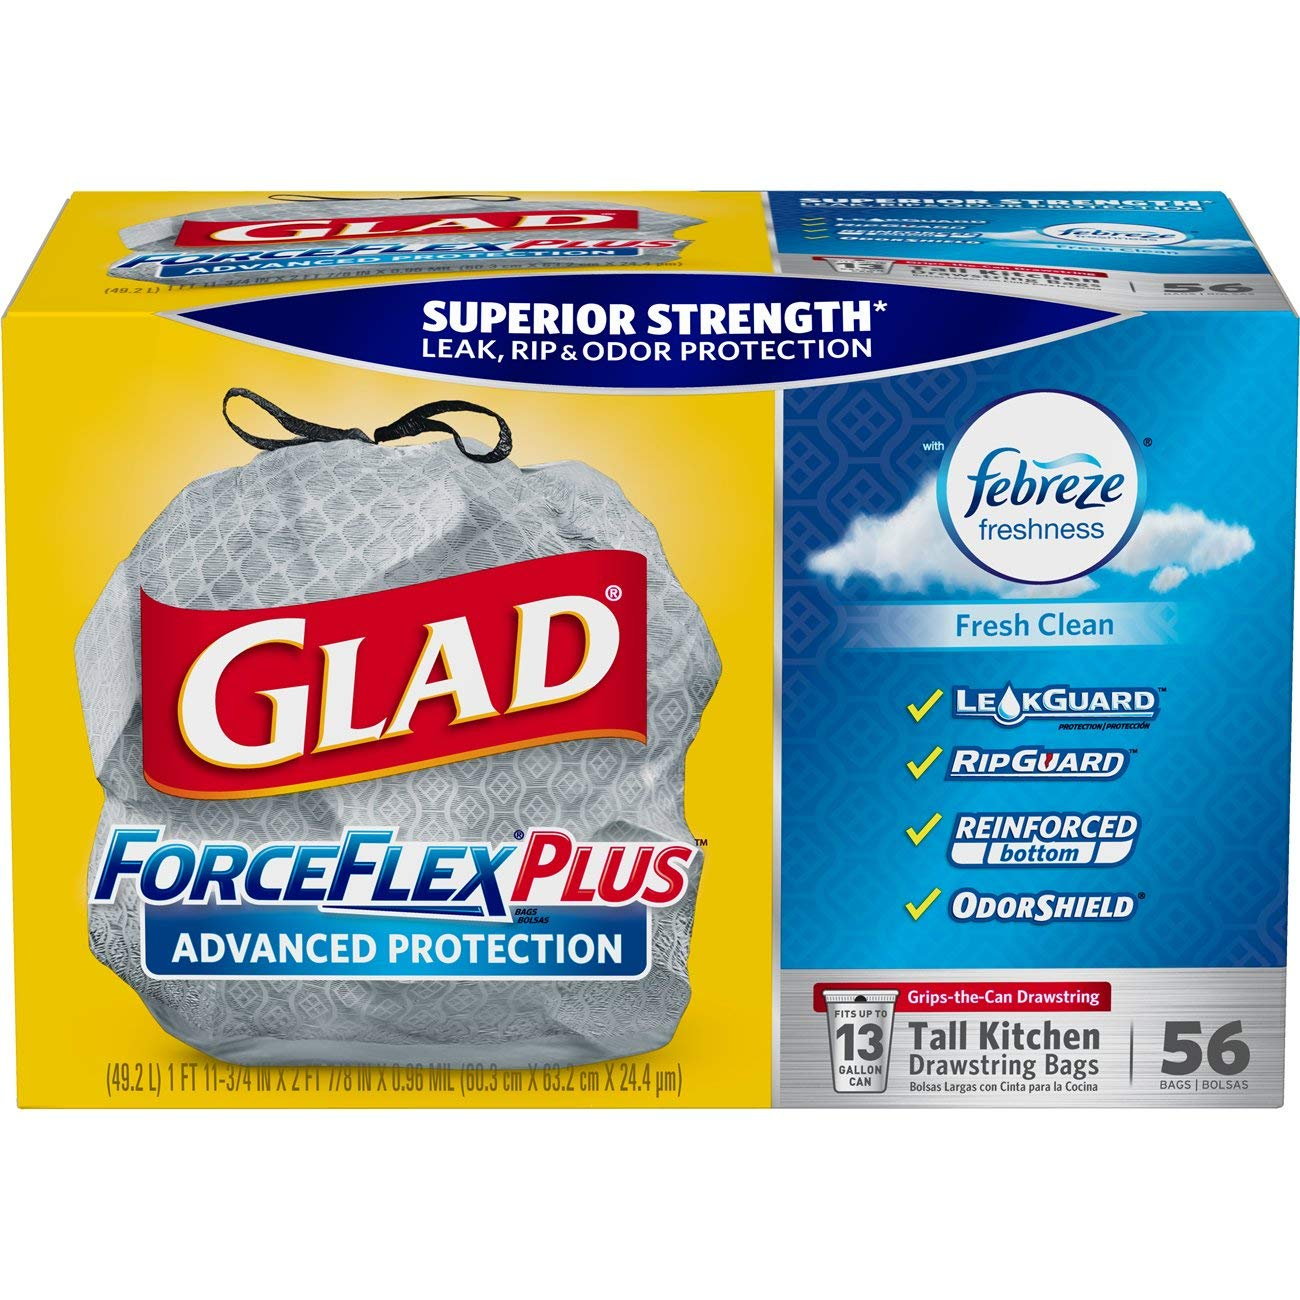 Glad ForceFlexPlus Advanced Protection Tall Kitchen Drawstring Trash Bags - Febreze Fresh Clean -13 Gallon - 56 Count (Packaging May Vary) Clorox Company